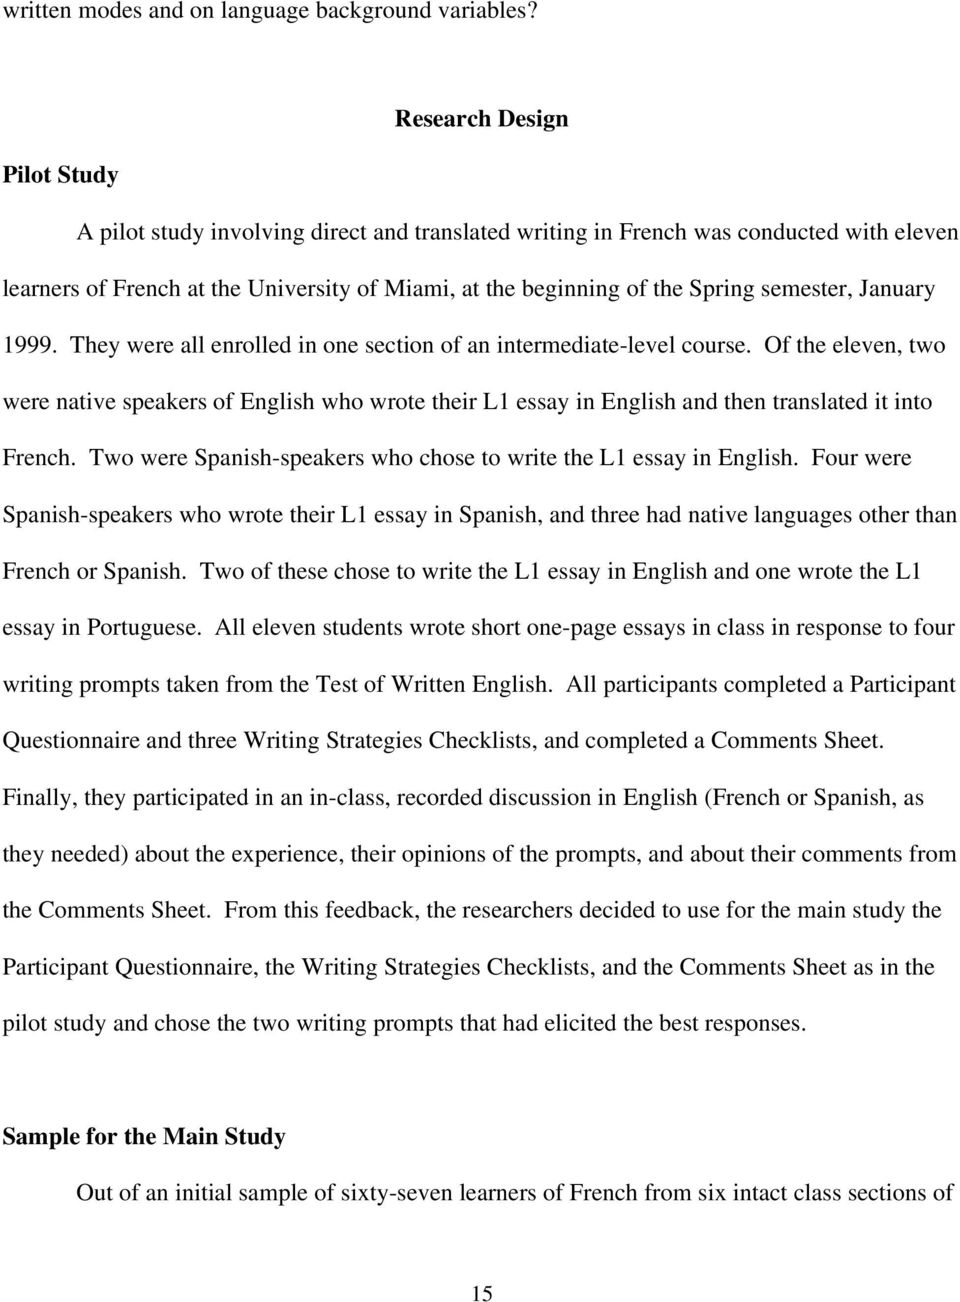 002 Essay Example In Spanish Direct Vs Translated Writing What Students Do And The Google Translate Pa Write Your My Teaching Essays Phrases How To An About Yourself Unbelievable On India Language Vacation Full